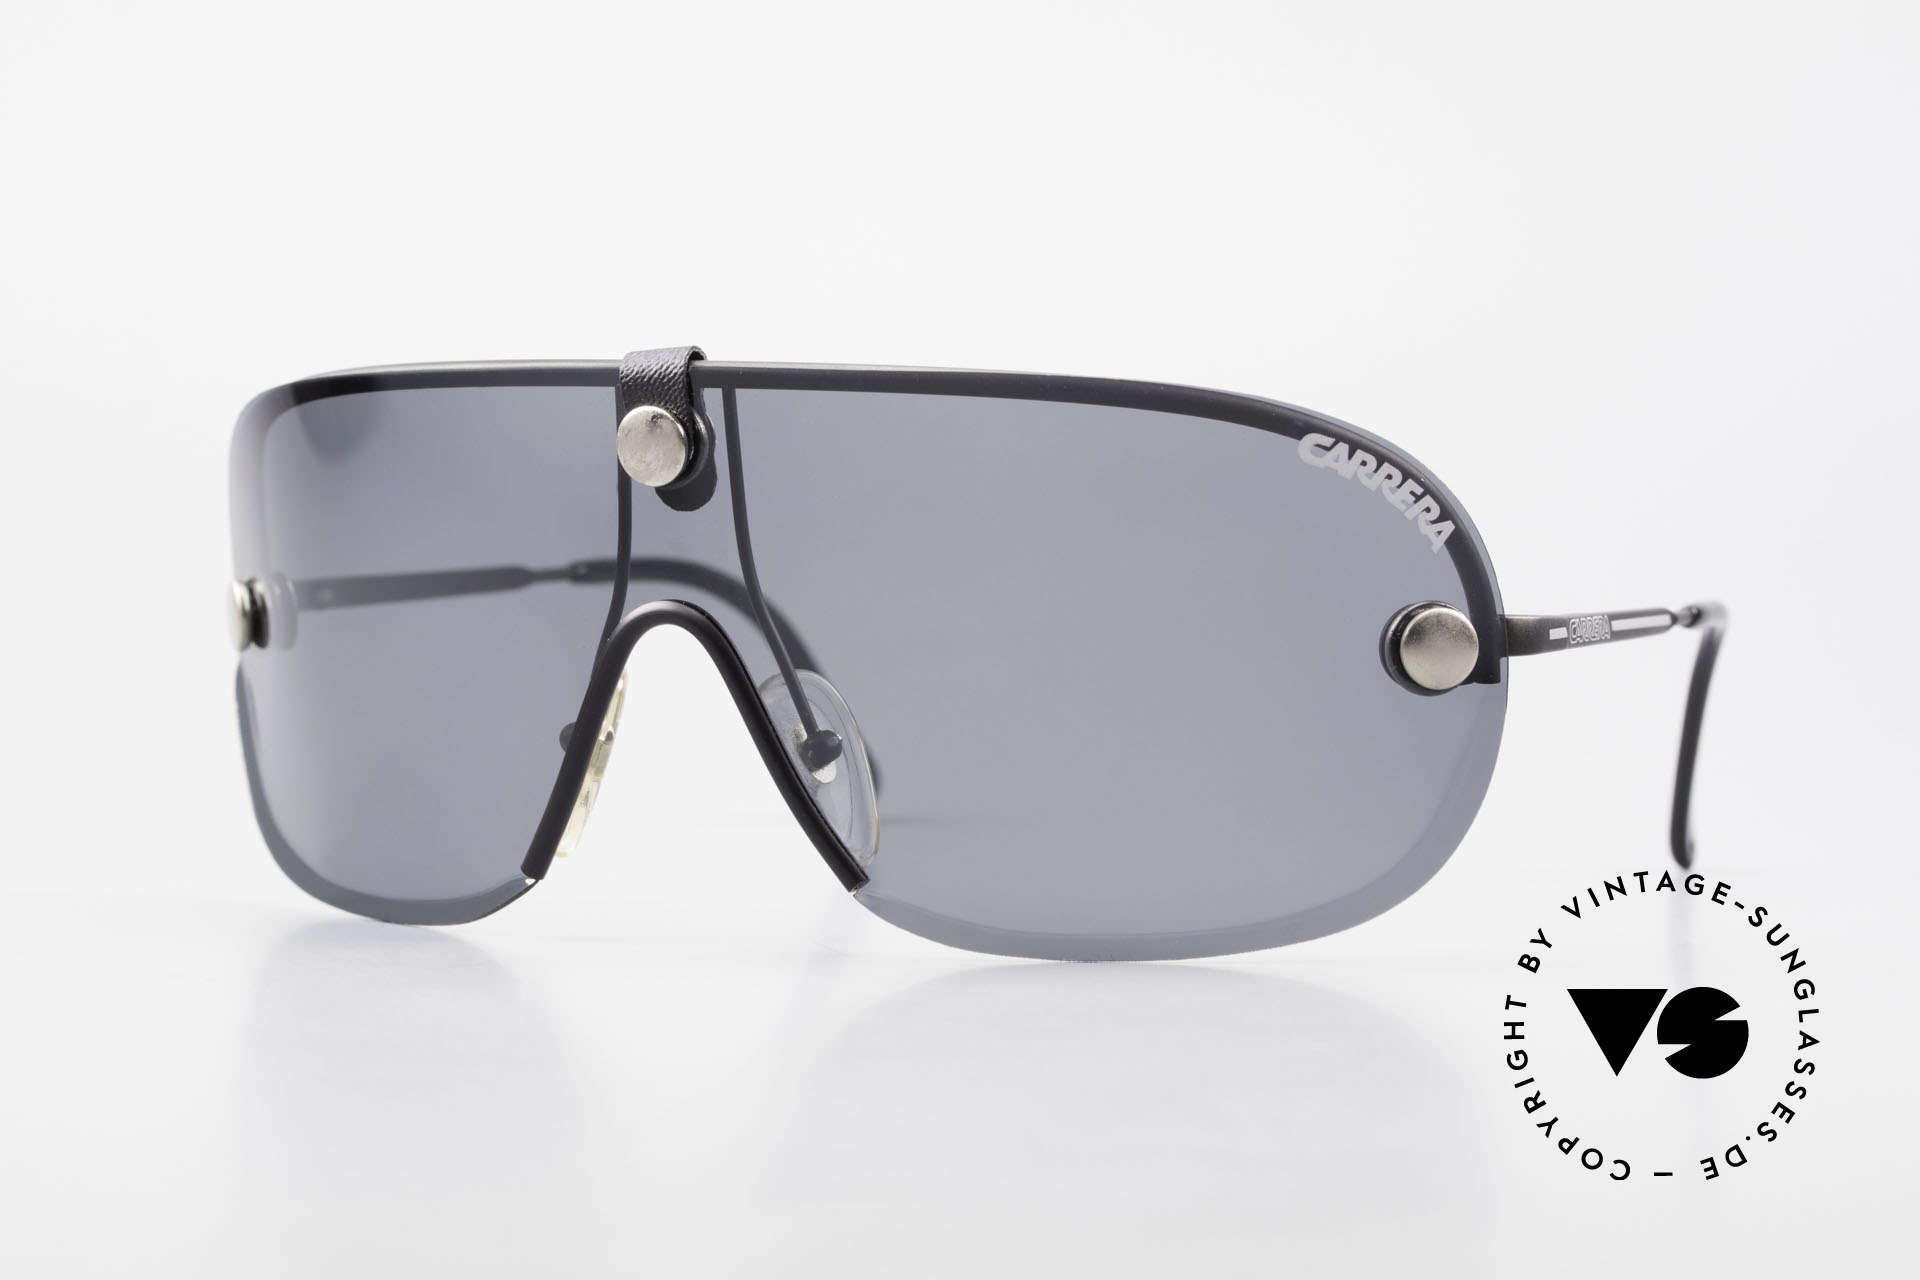 Carrera 5418 All Weather Shades Polarized, ultra rare VINTAGE Carrera sport's sunglasses from 1989, Made for Men